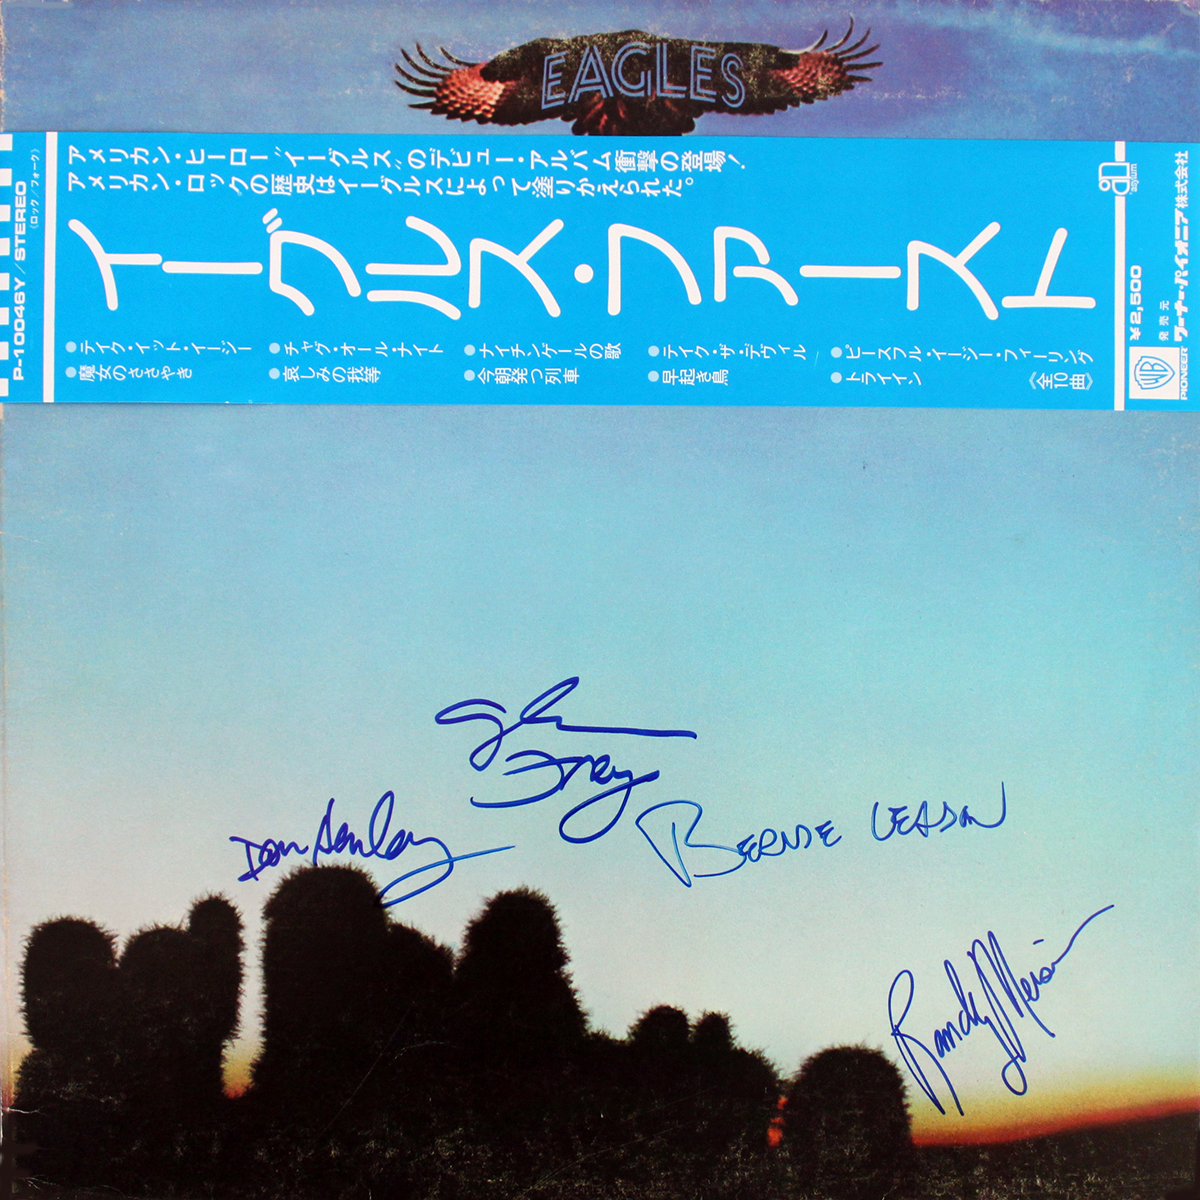 Eagles LP - Eagles Japanese Import